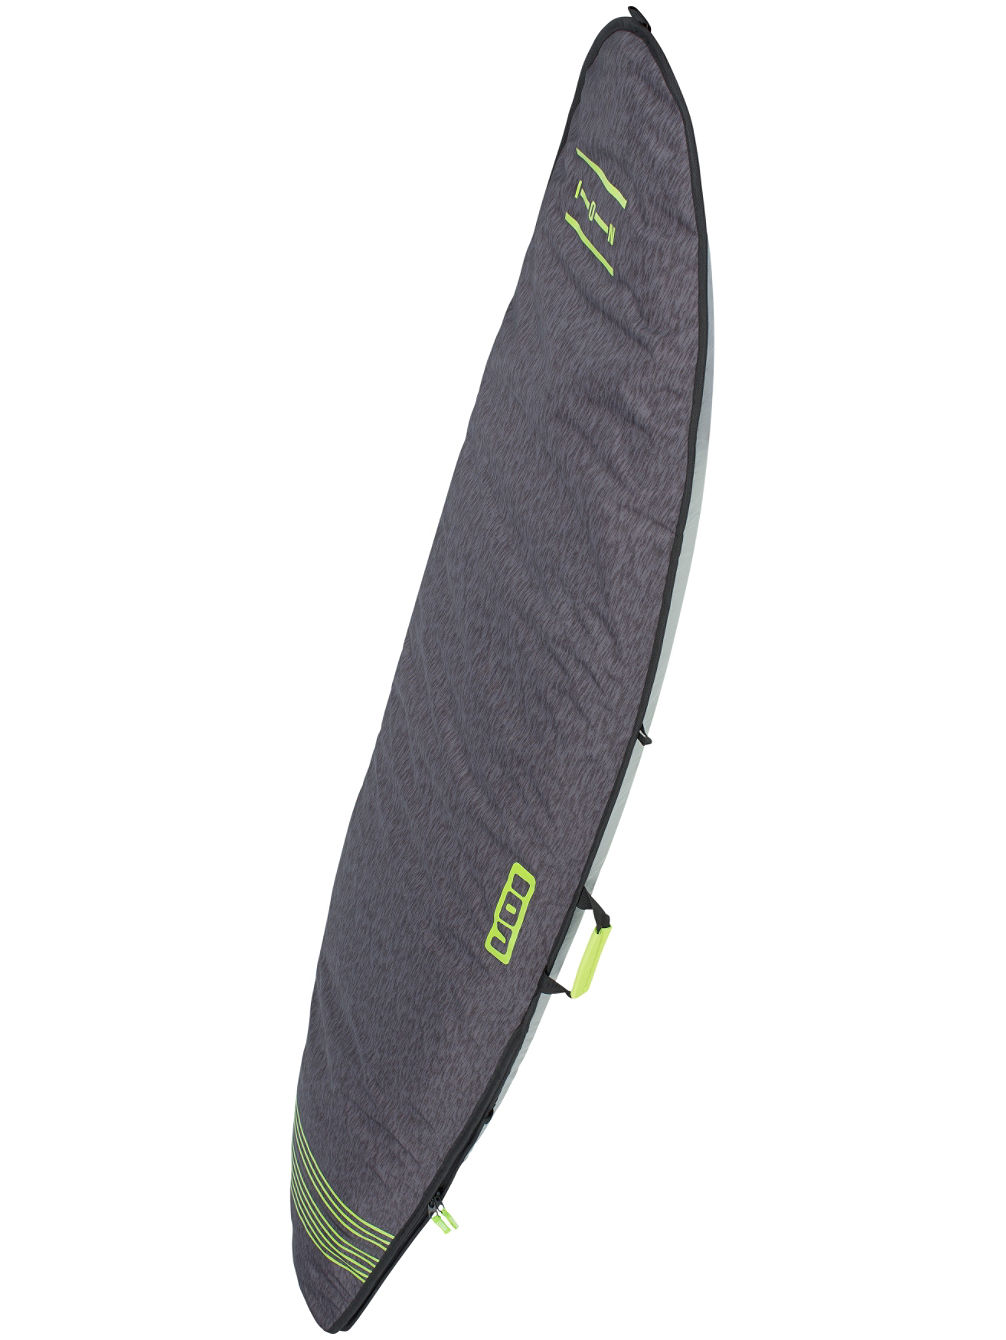 Sup Core 8x32 Boardbag